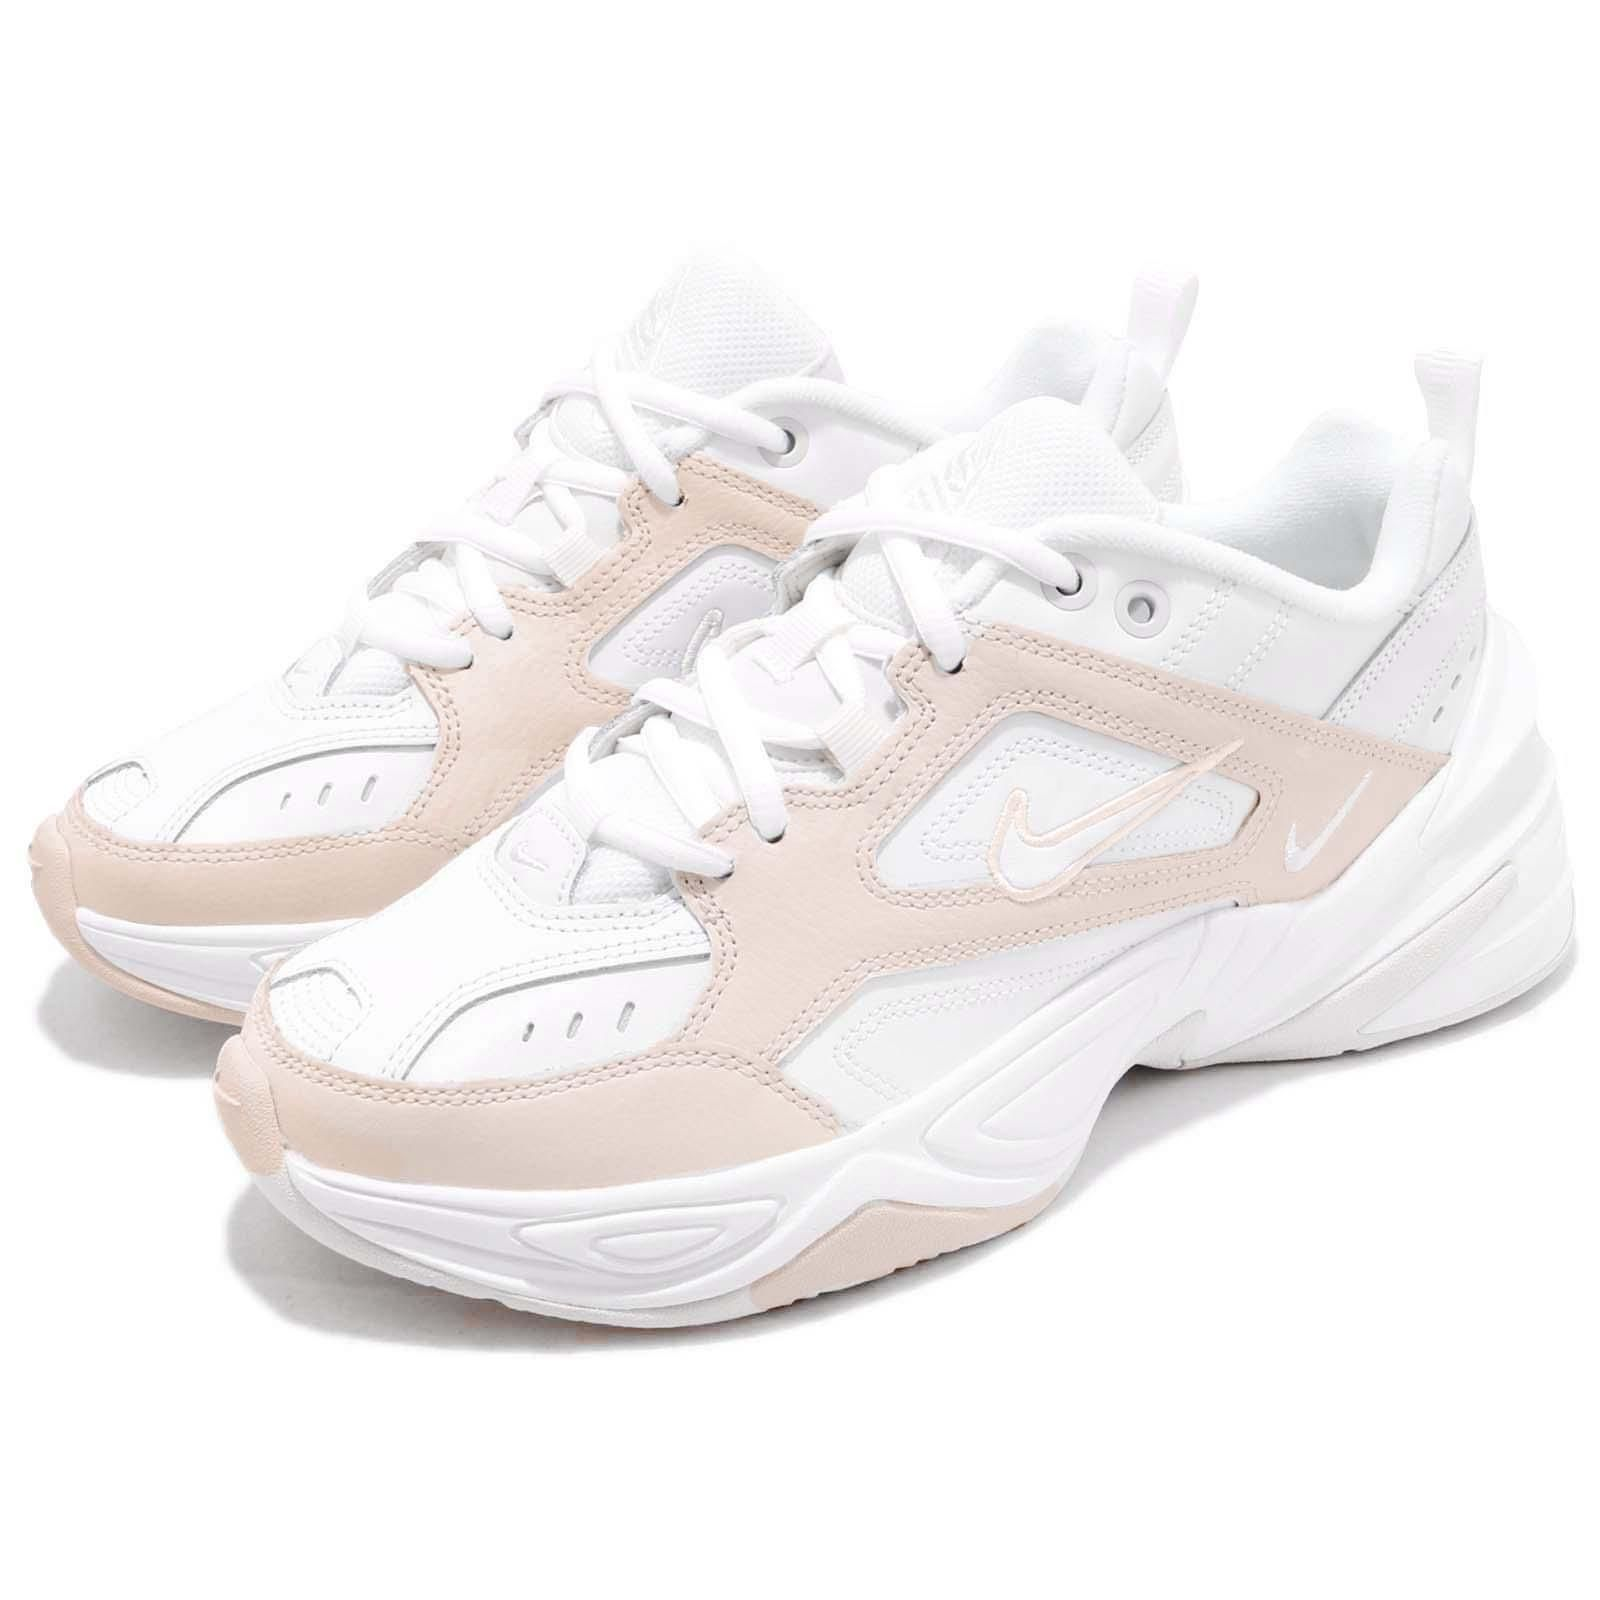 outlet store 6ad7f 53ad5 124.99   Nike Wmns M2K Tekno Phantom White Women Casual Daddy Shoes Sneakers  AO3108-